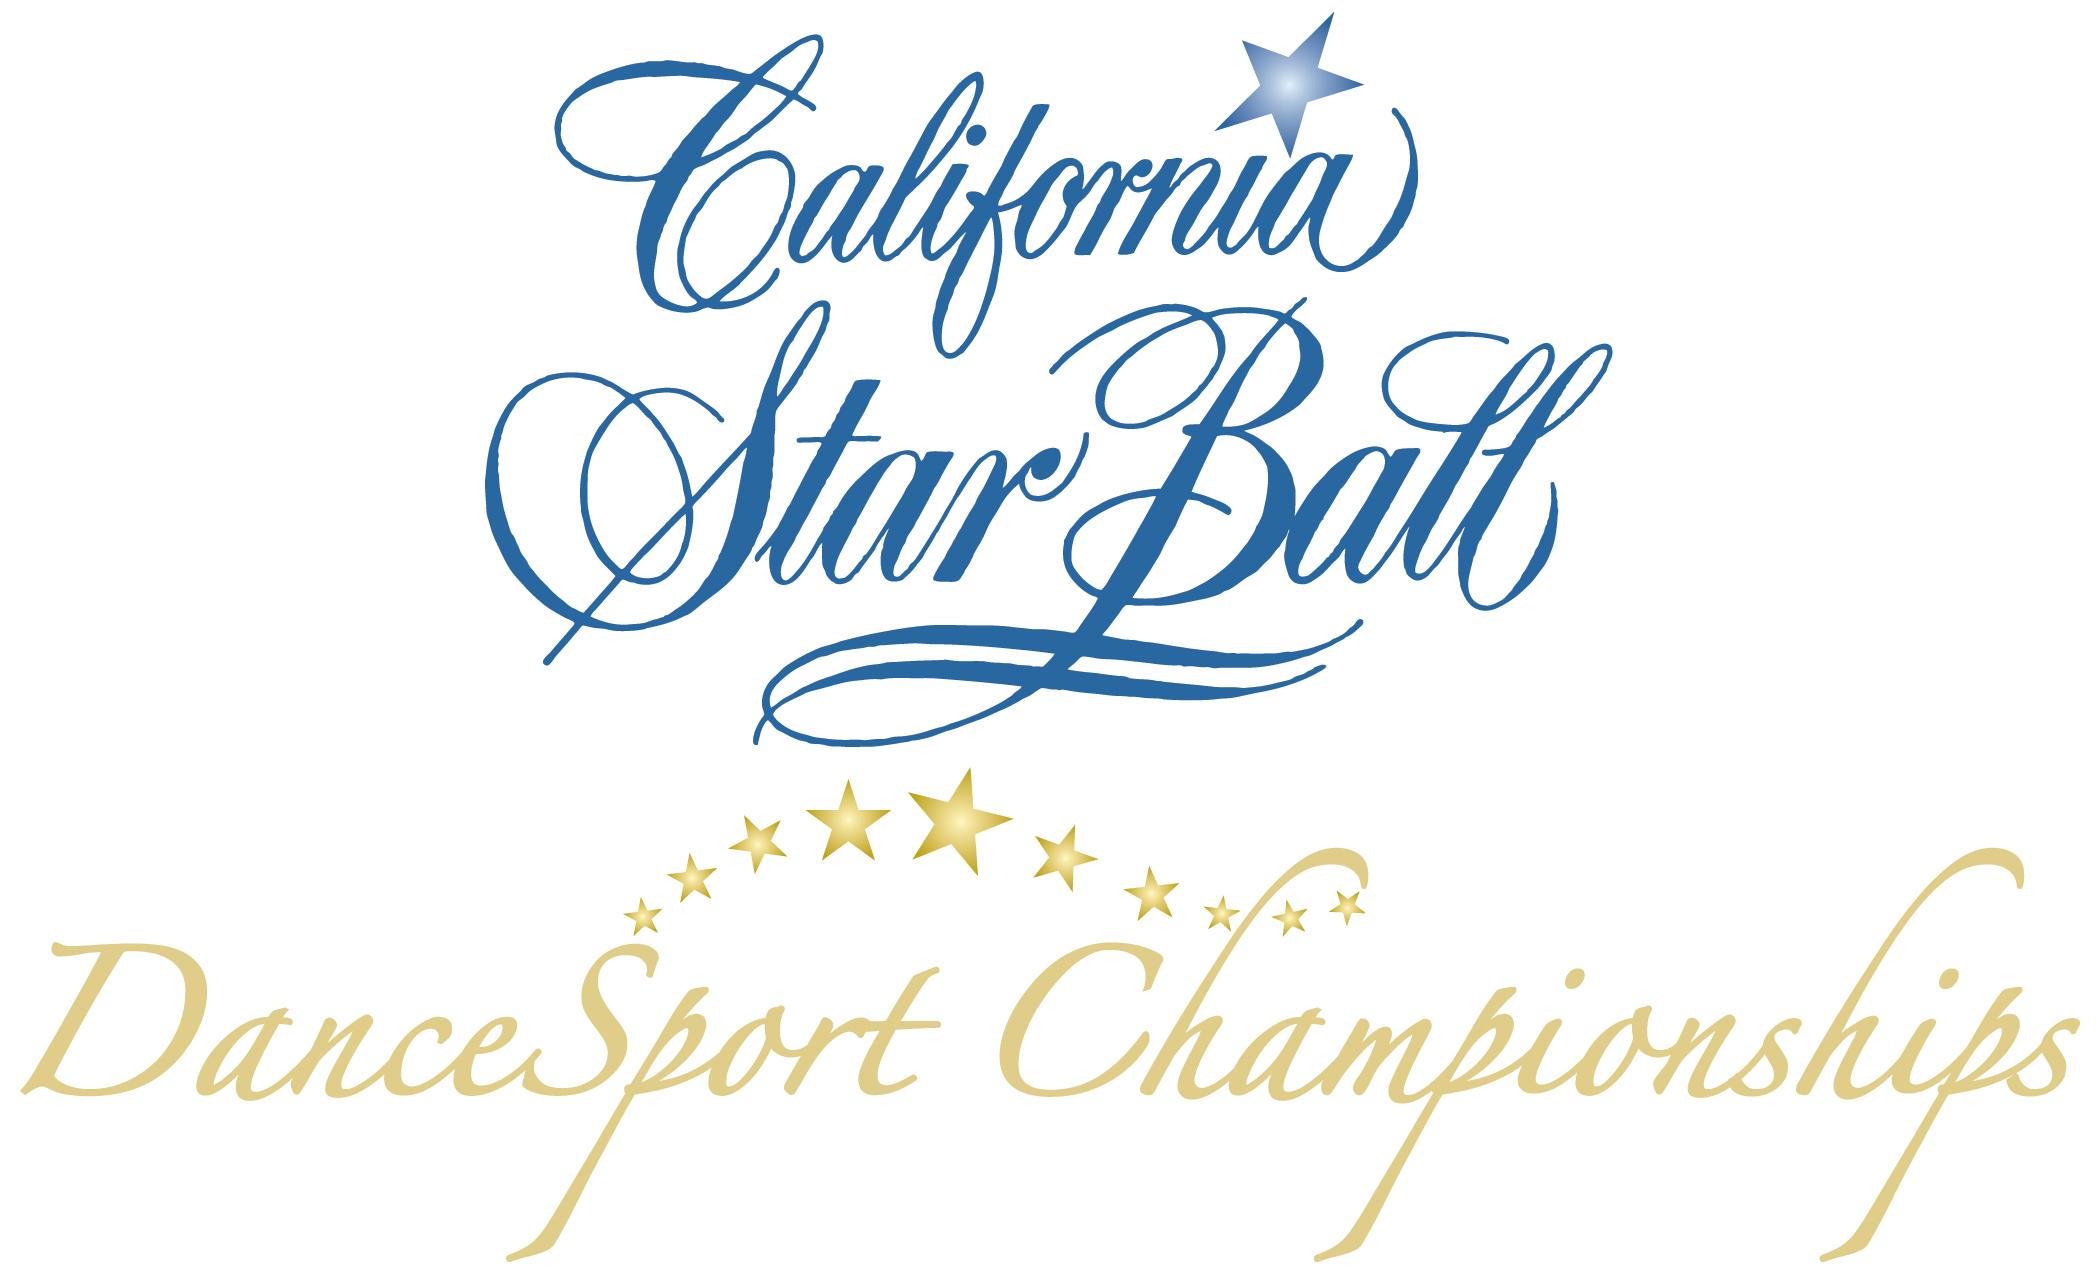 california-star-ball-dancesport-championships-1543517964.jpg